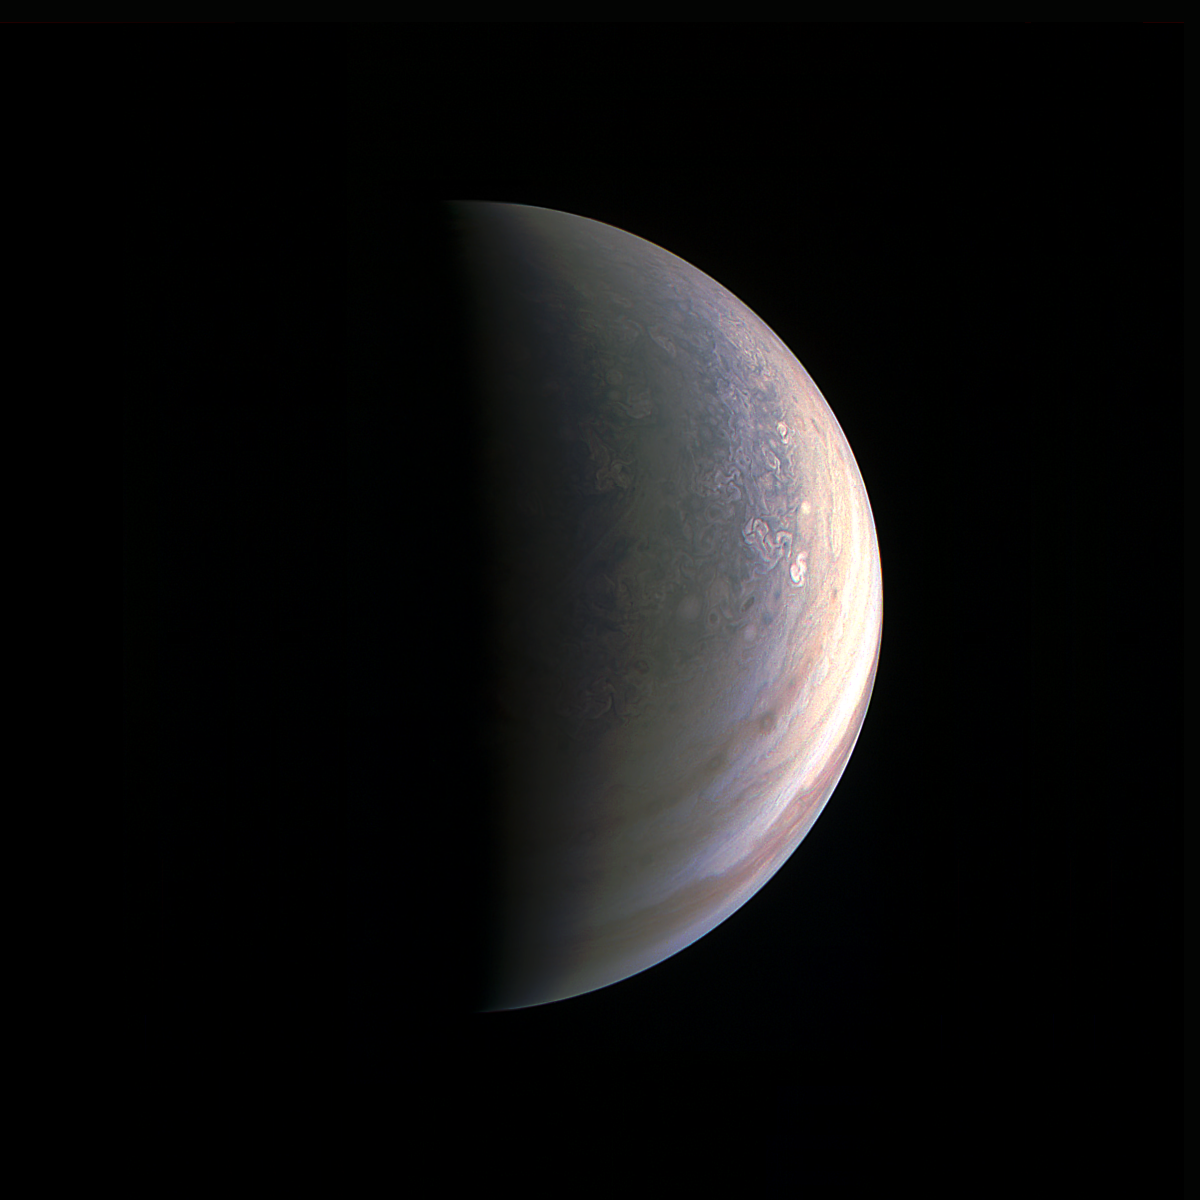 NASA's Juno spacecraft captured this view as it closed in on Jupiter's north pole, about two hours before closest approach on Aug. 27, 2016. - Image   Credits: NASA/JPL-Caltech/SwRI/MSSS